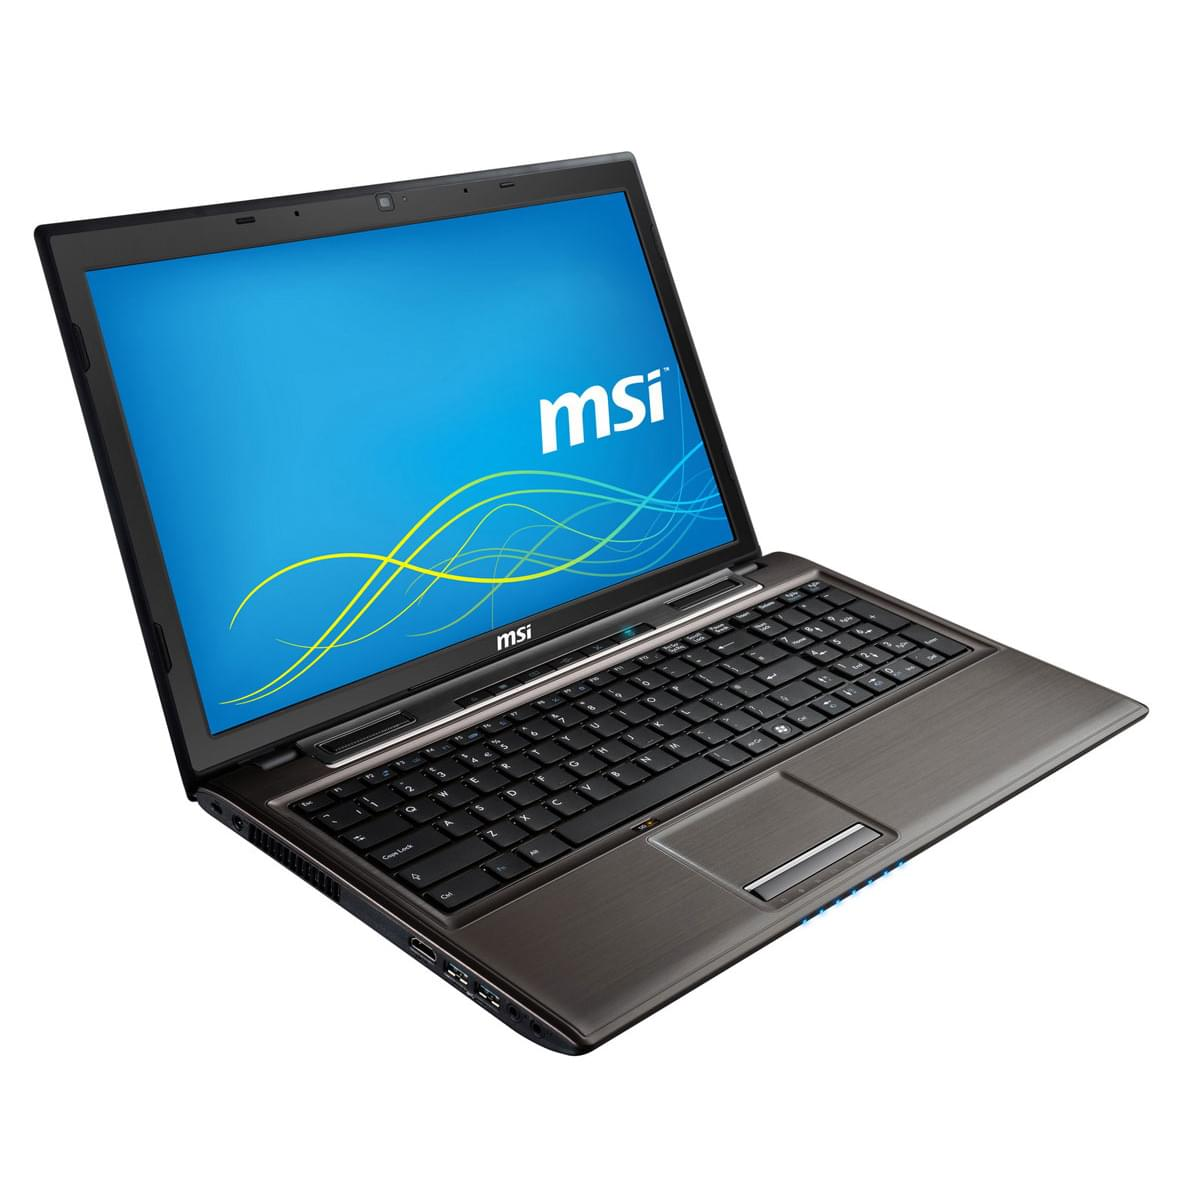 MSI 9S7-16GB11-448 - PC portable MSI - Cybertek.fr - 0